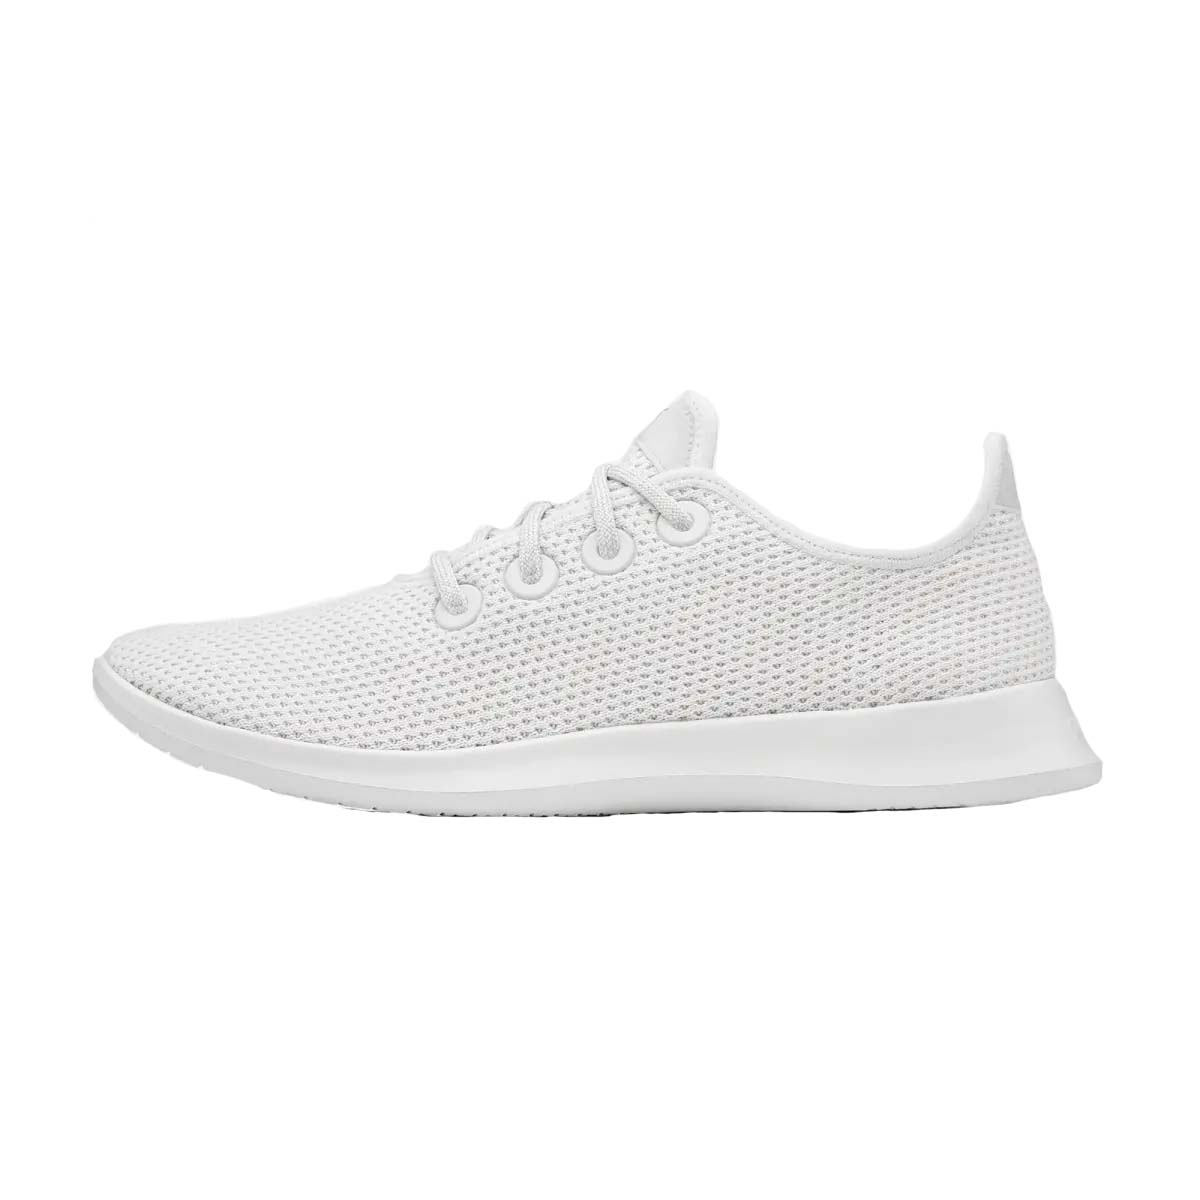 Allbirds treerunners white